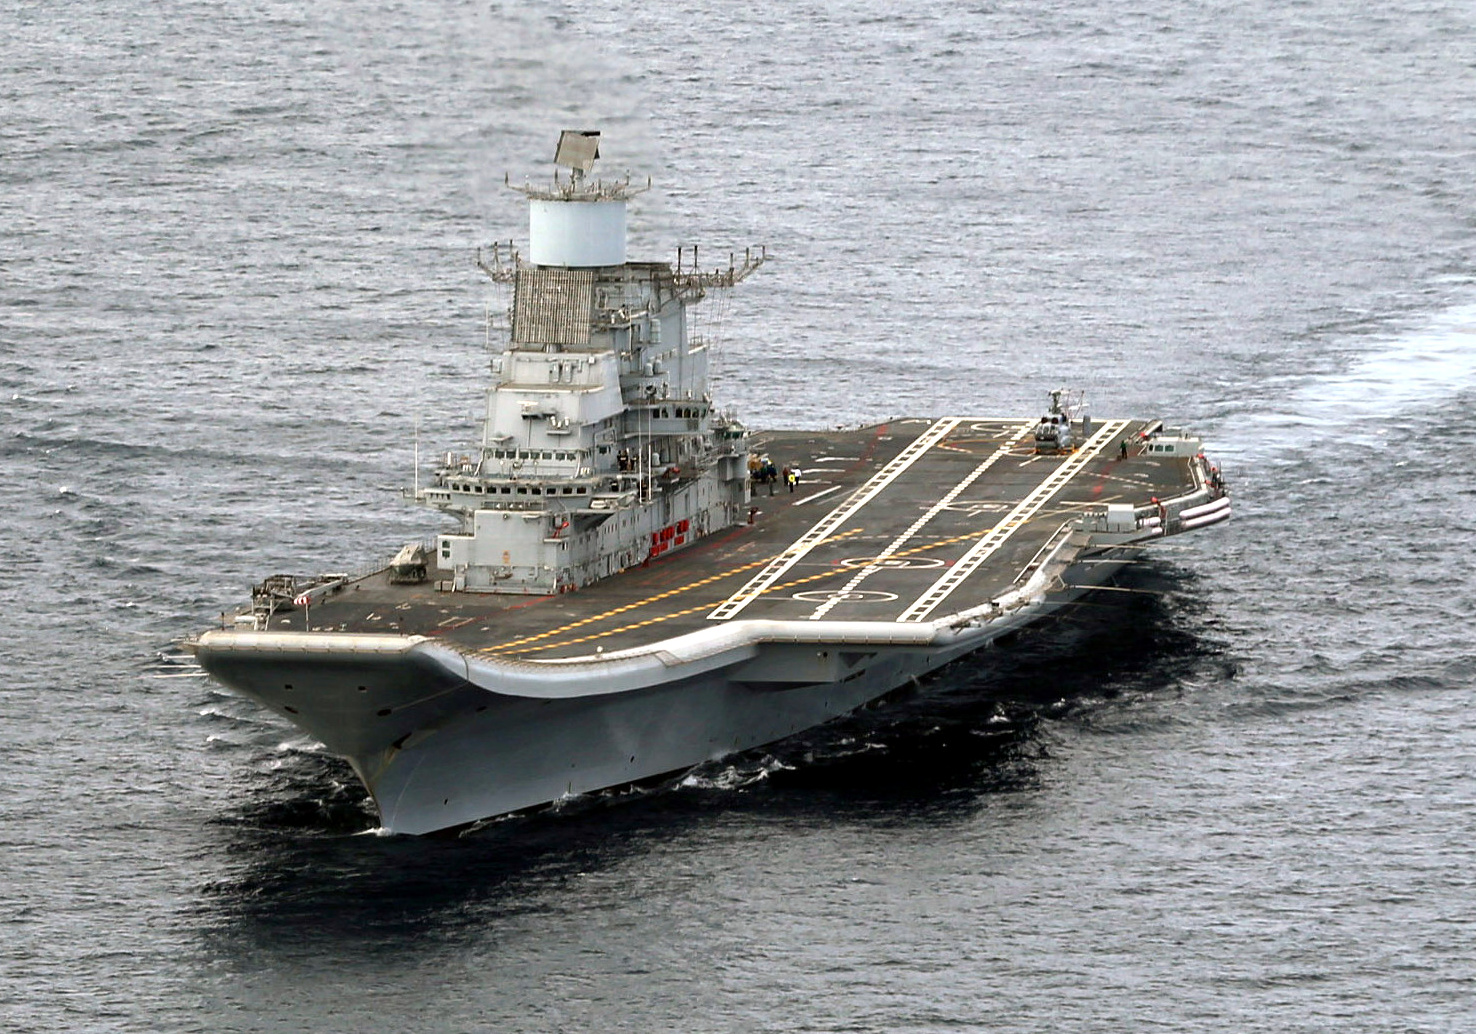 INS Vikramaditya underway during its delivery to the Indian Navy.